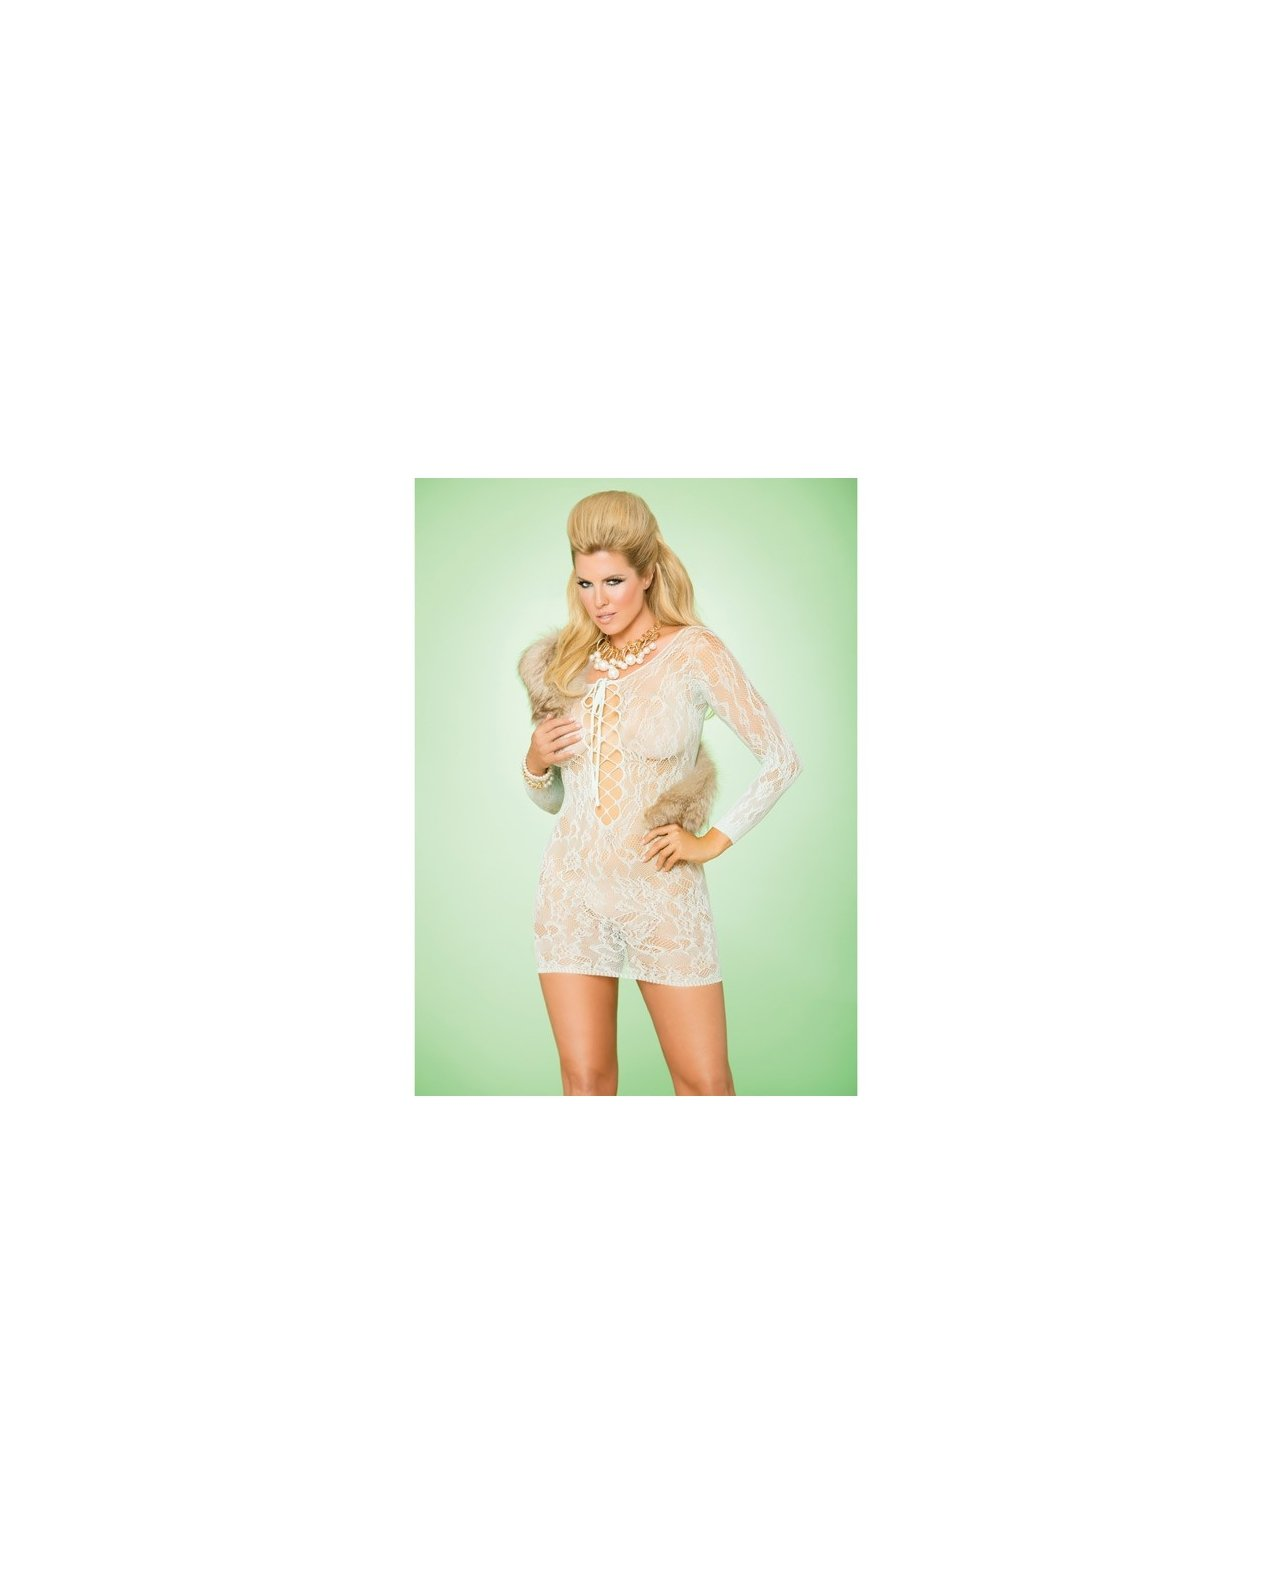 Vivace Long Sleeve Lace Mini Dress w/Lace Up Front Mint Green QN